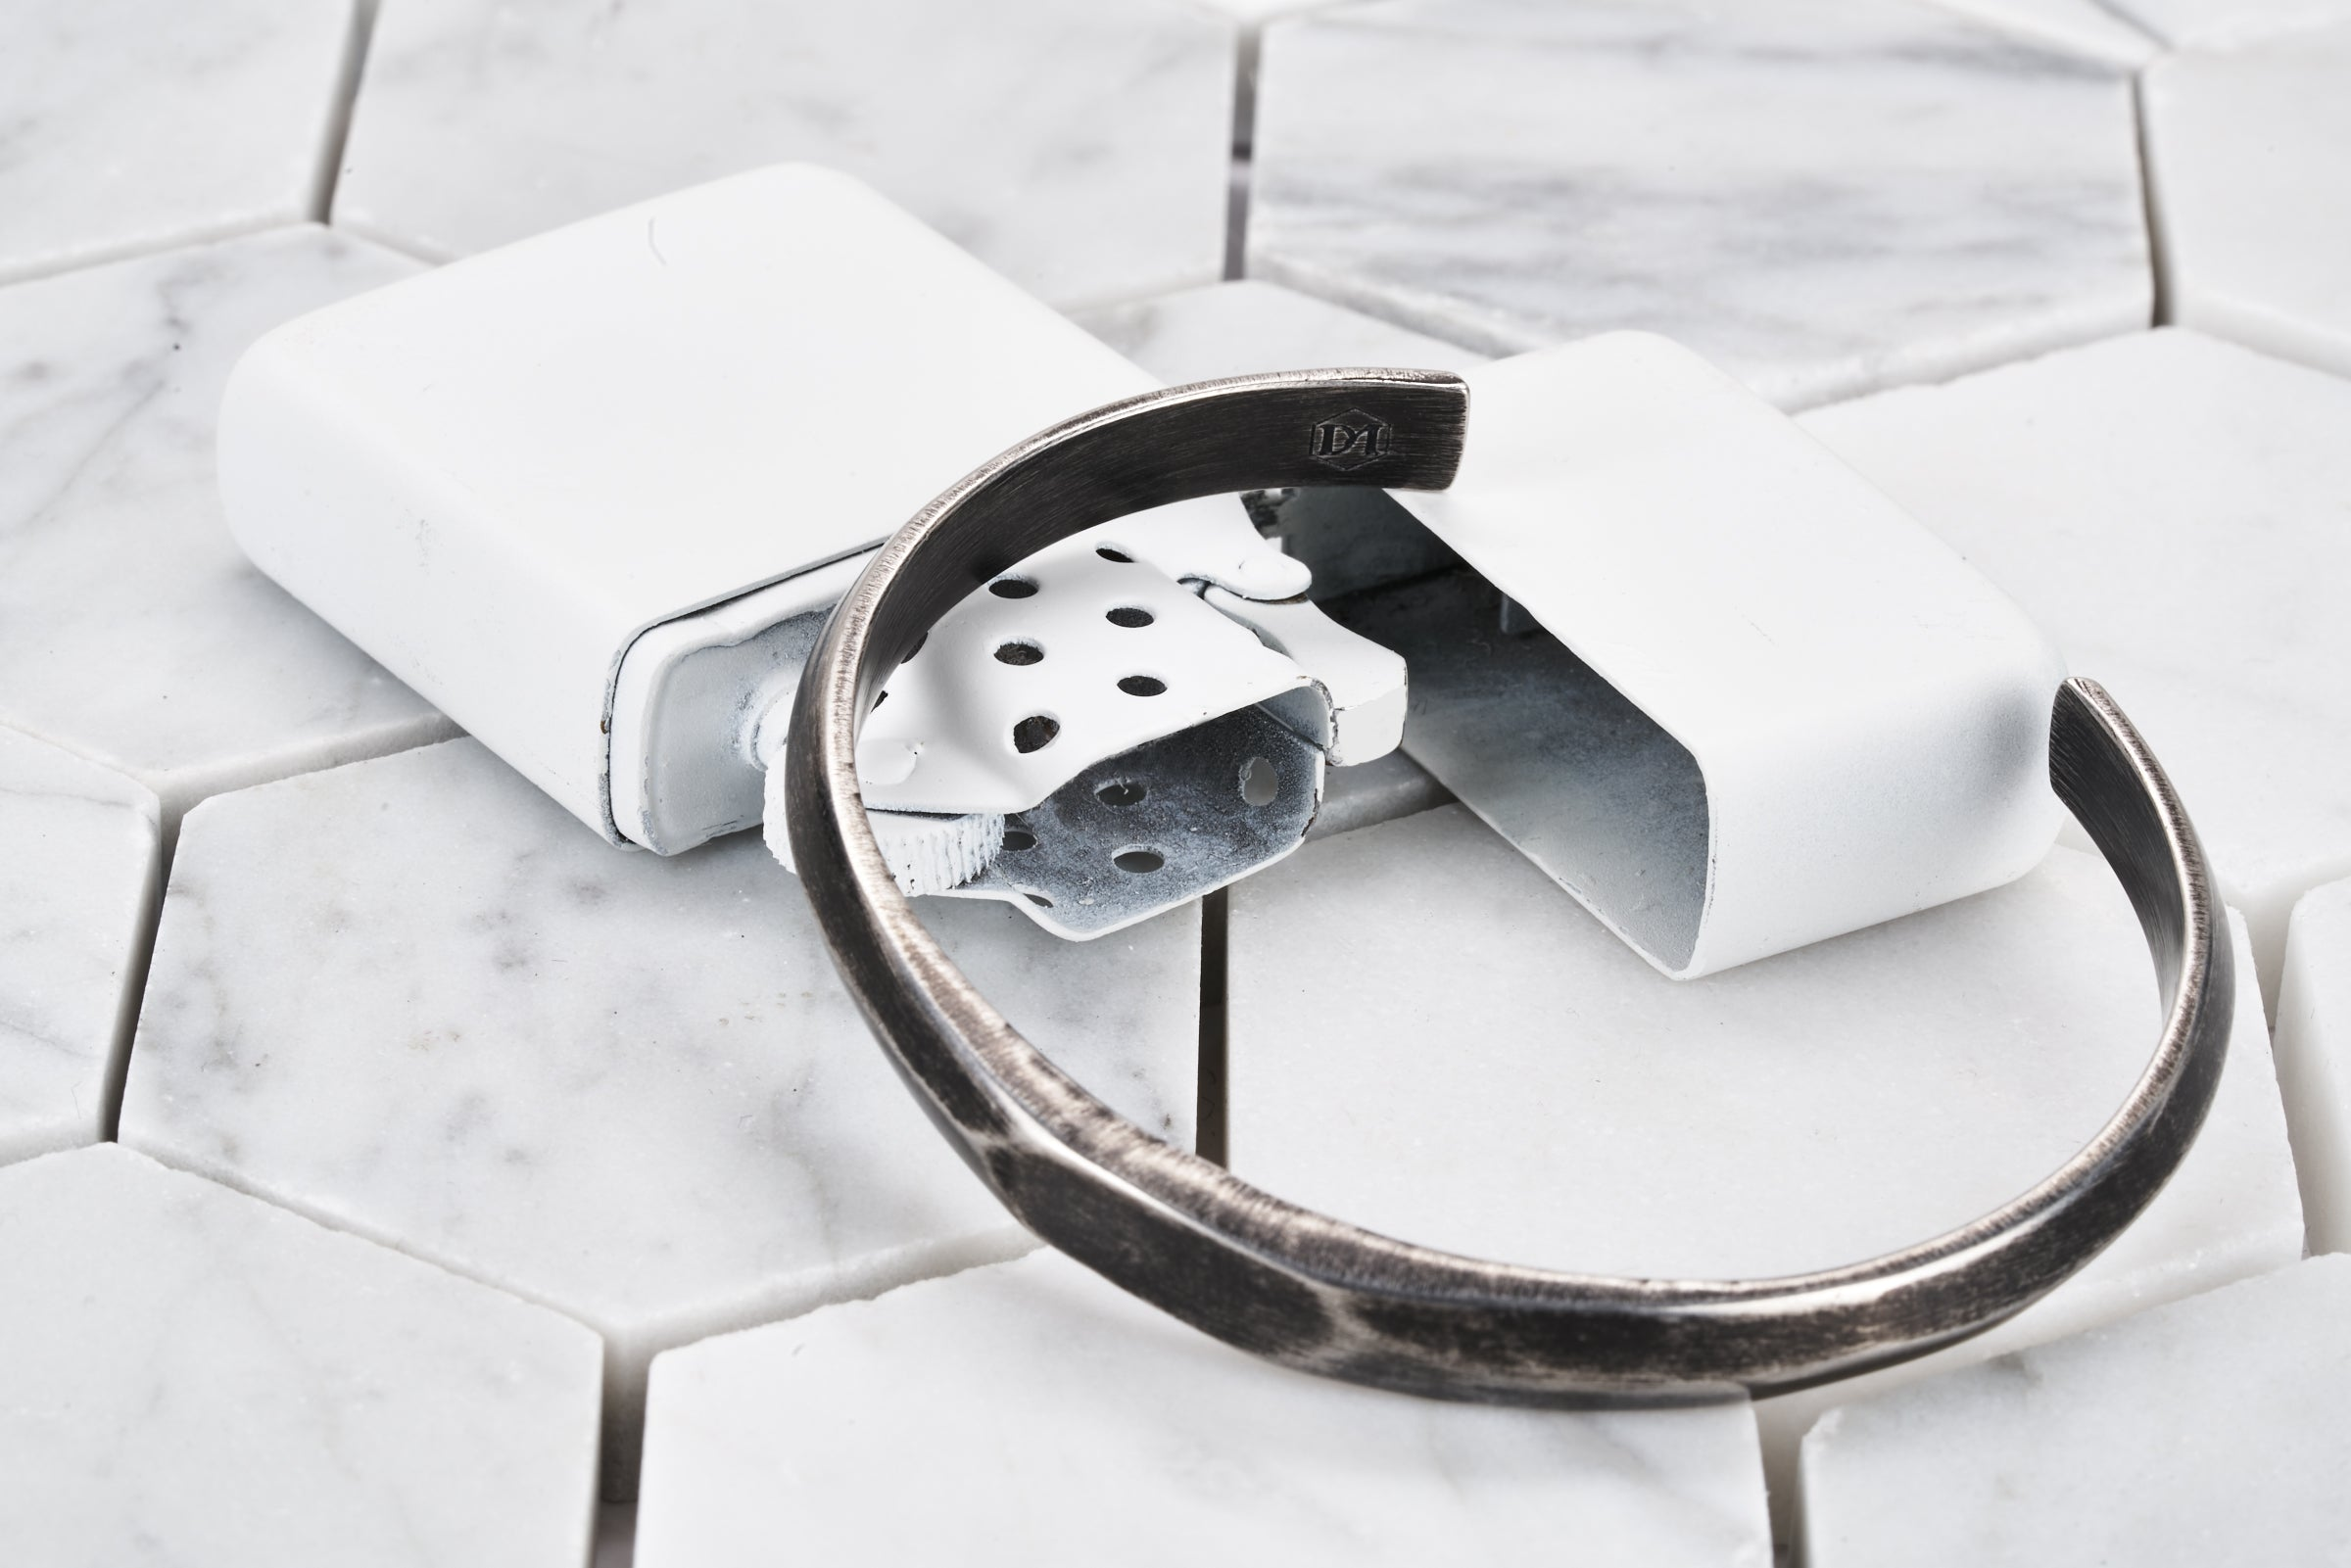 An image of the Duality antique steel cuff bracelet sitting on top of a white zippo lighter. The front of the bracelet shows a wide hexagon front bezel.